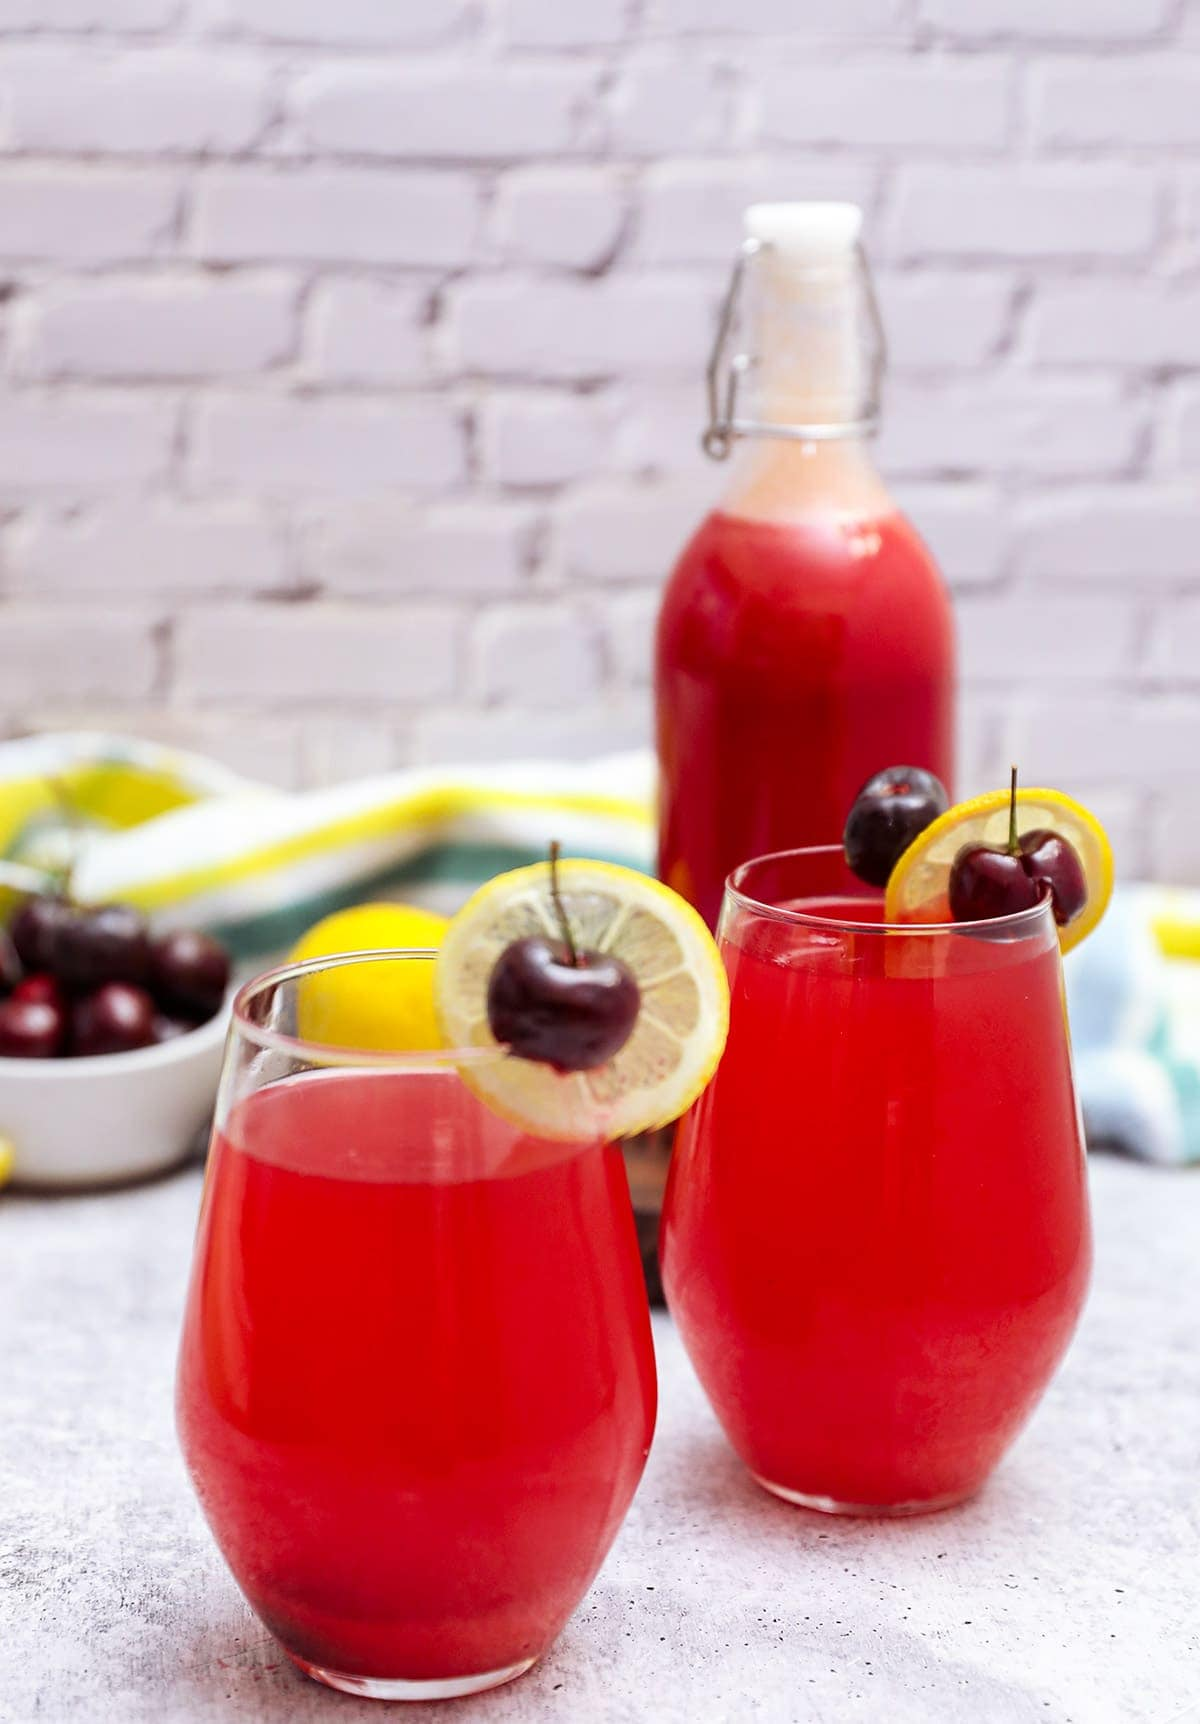 Cherry lemonade in glasses on a grey background